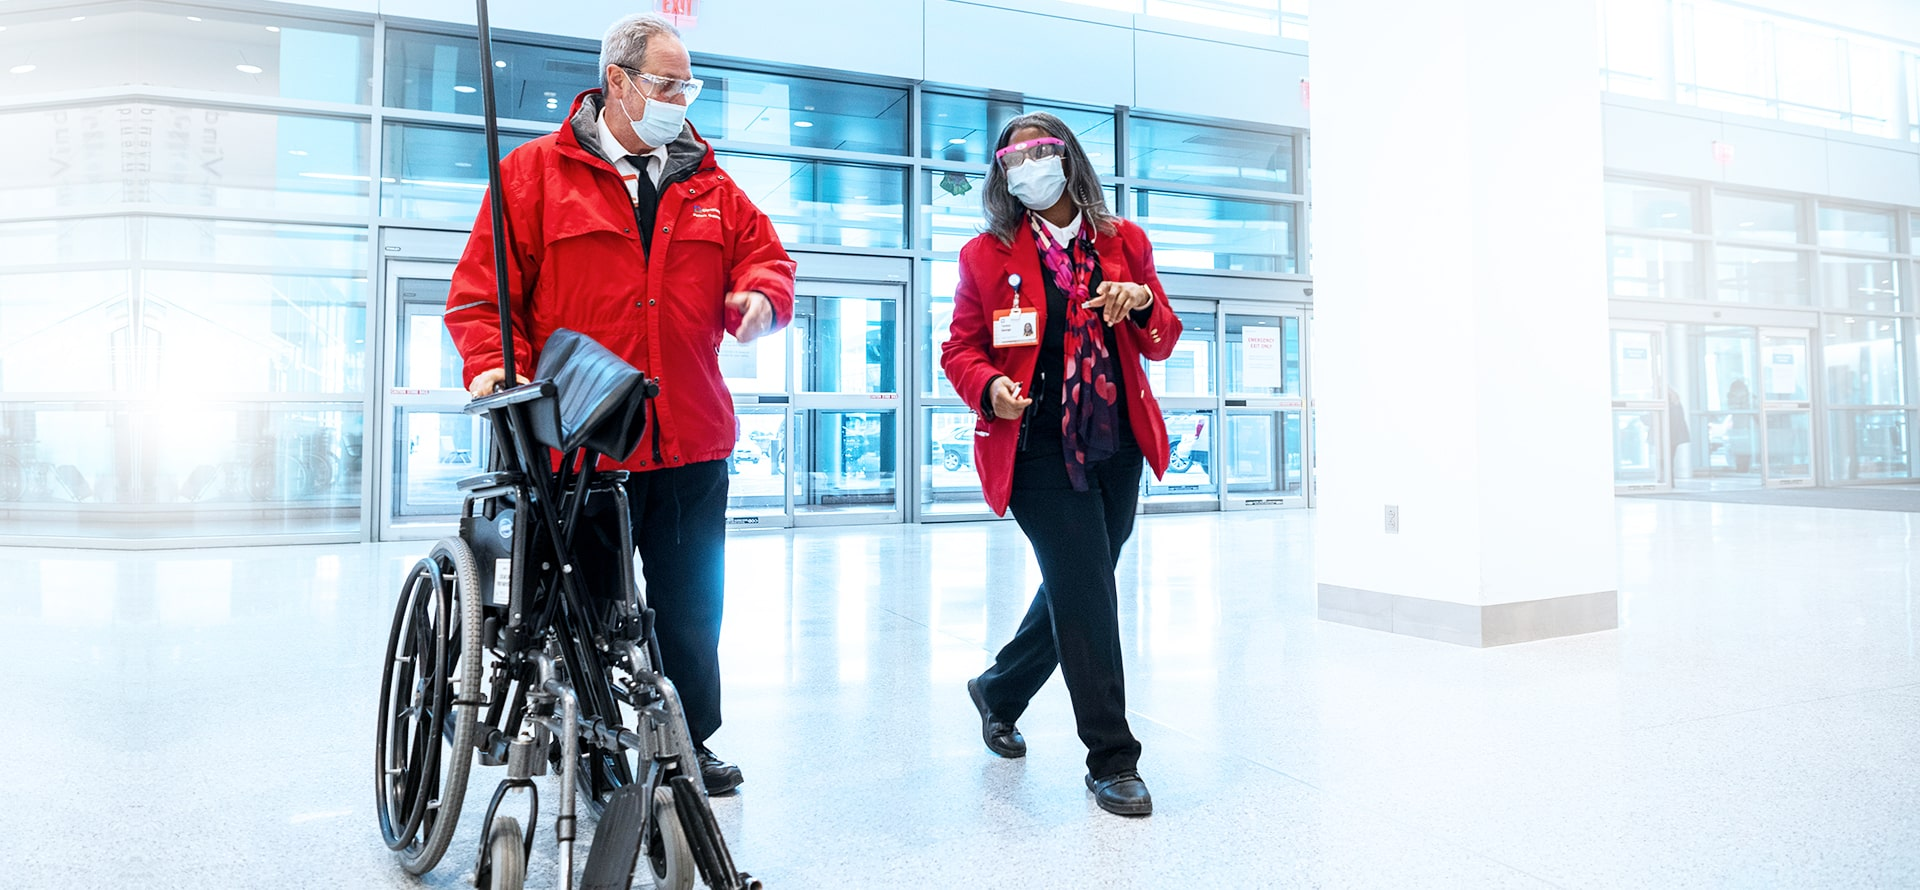 Male and female staff members wearing red jackets. The man is pushing an empty wheelchair